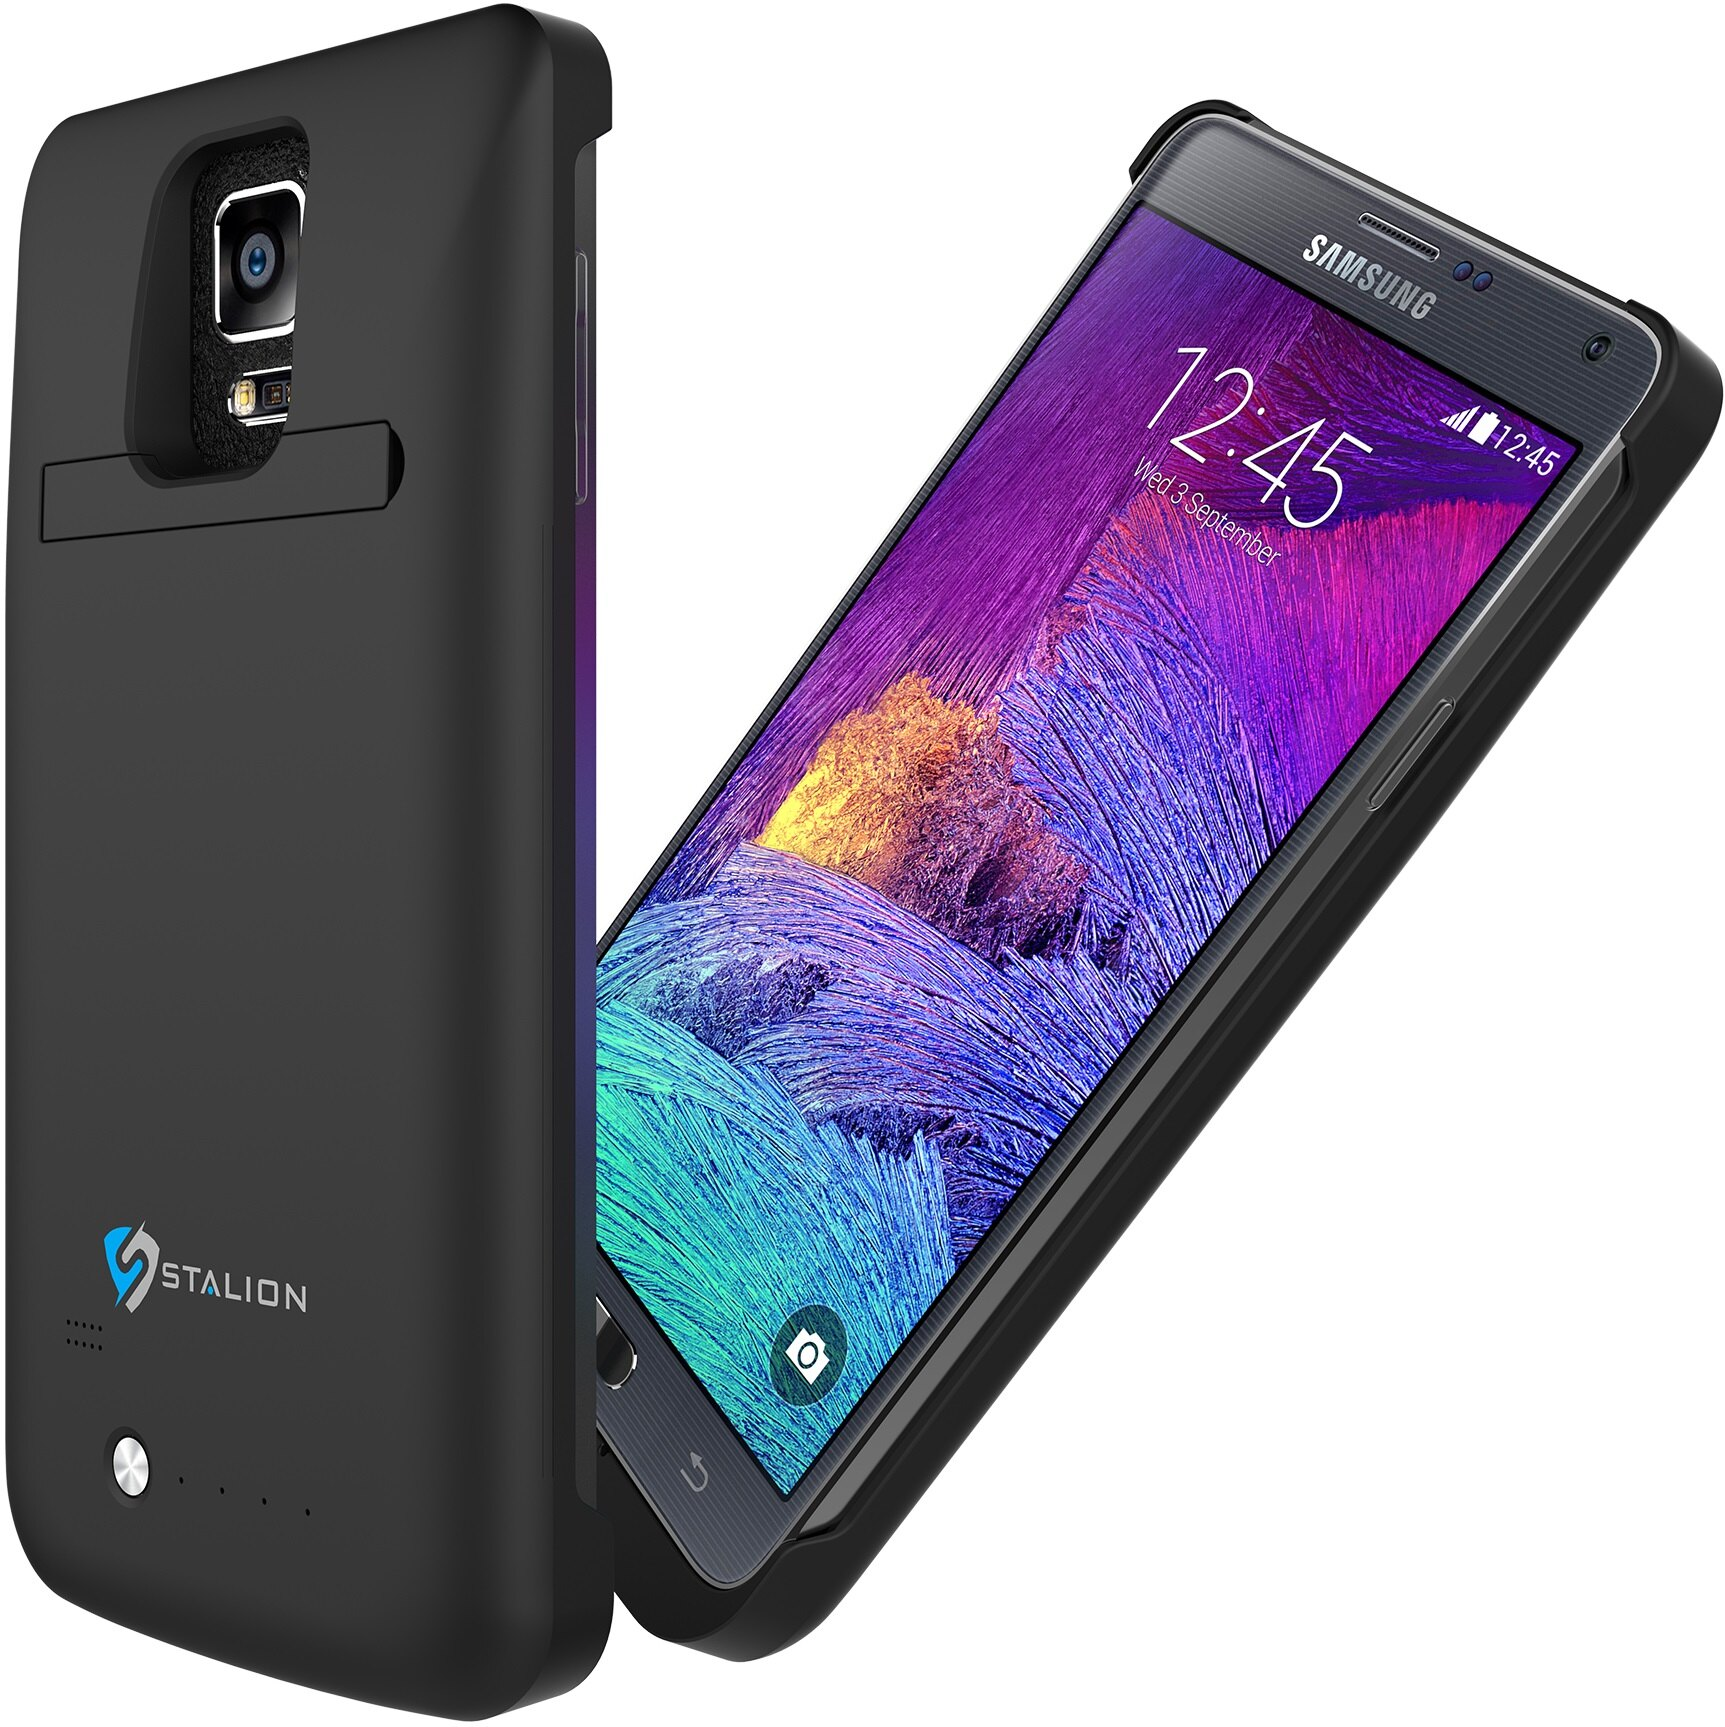 outlet store 3ede1 8d9be Samsung Galaxy Note 4 Battery Case Jet Black